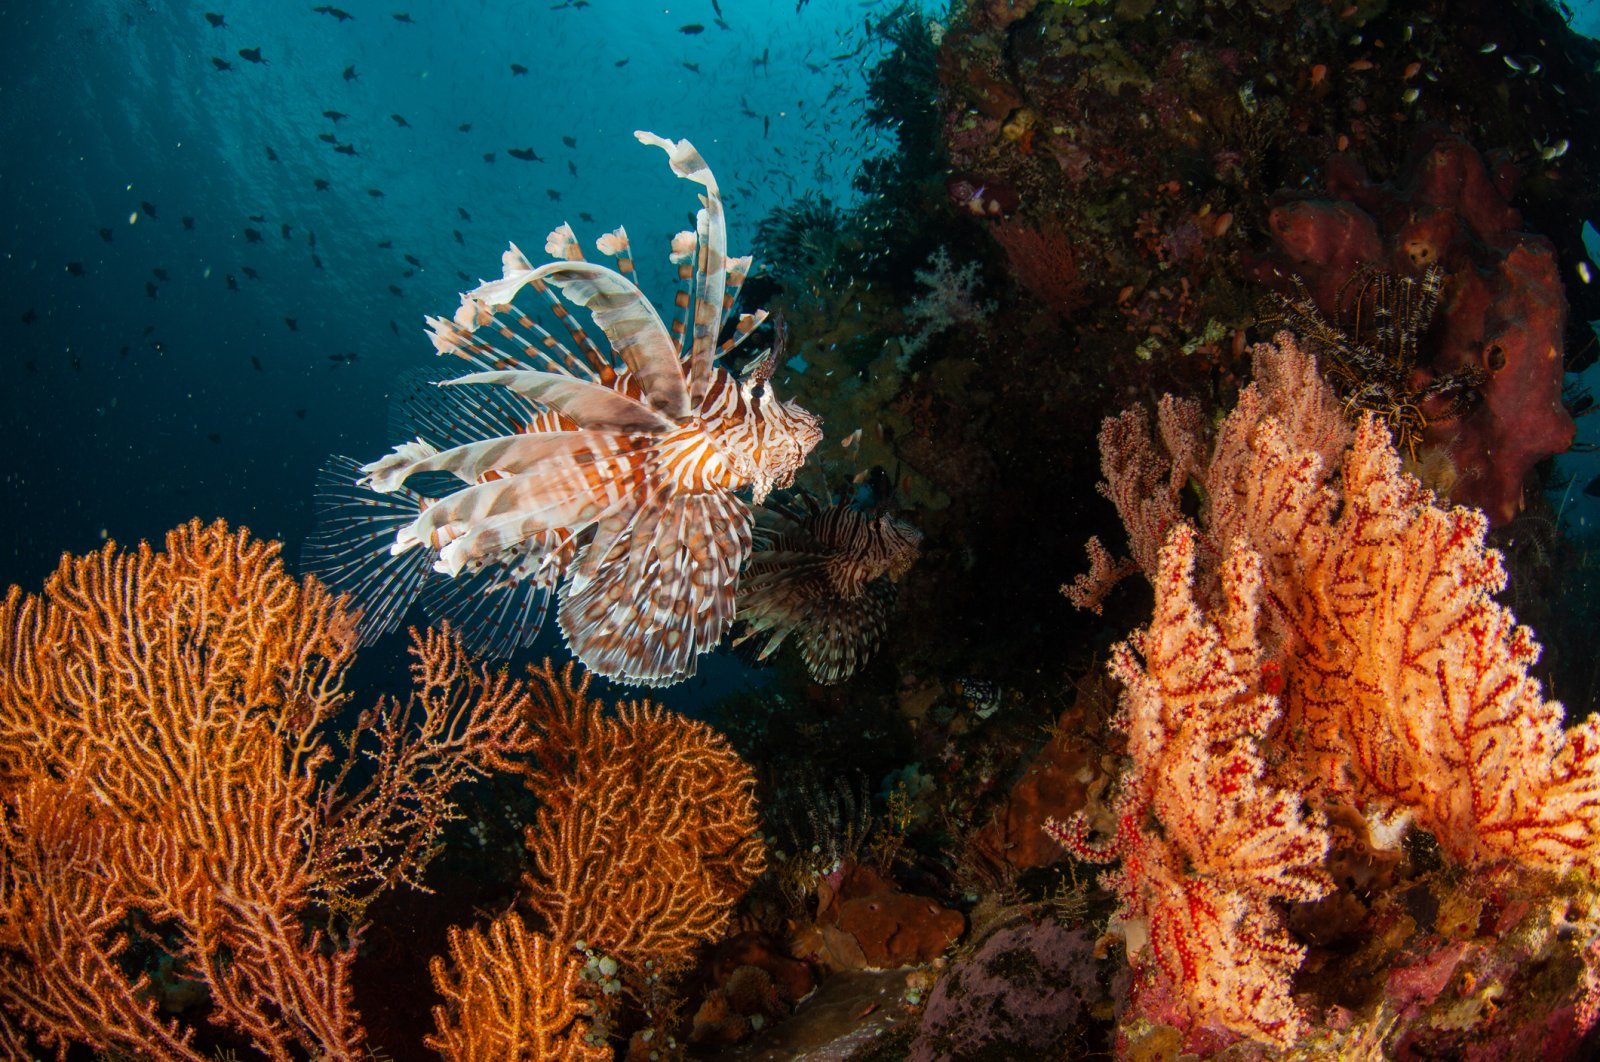 Tropical species have become dominant in some parts of the Mediterranean since they moved into the sea via the Suez Canal. (iStock Photo)